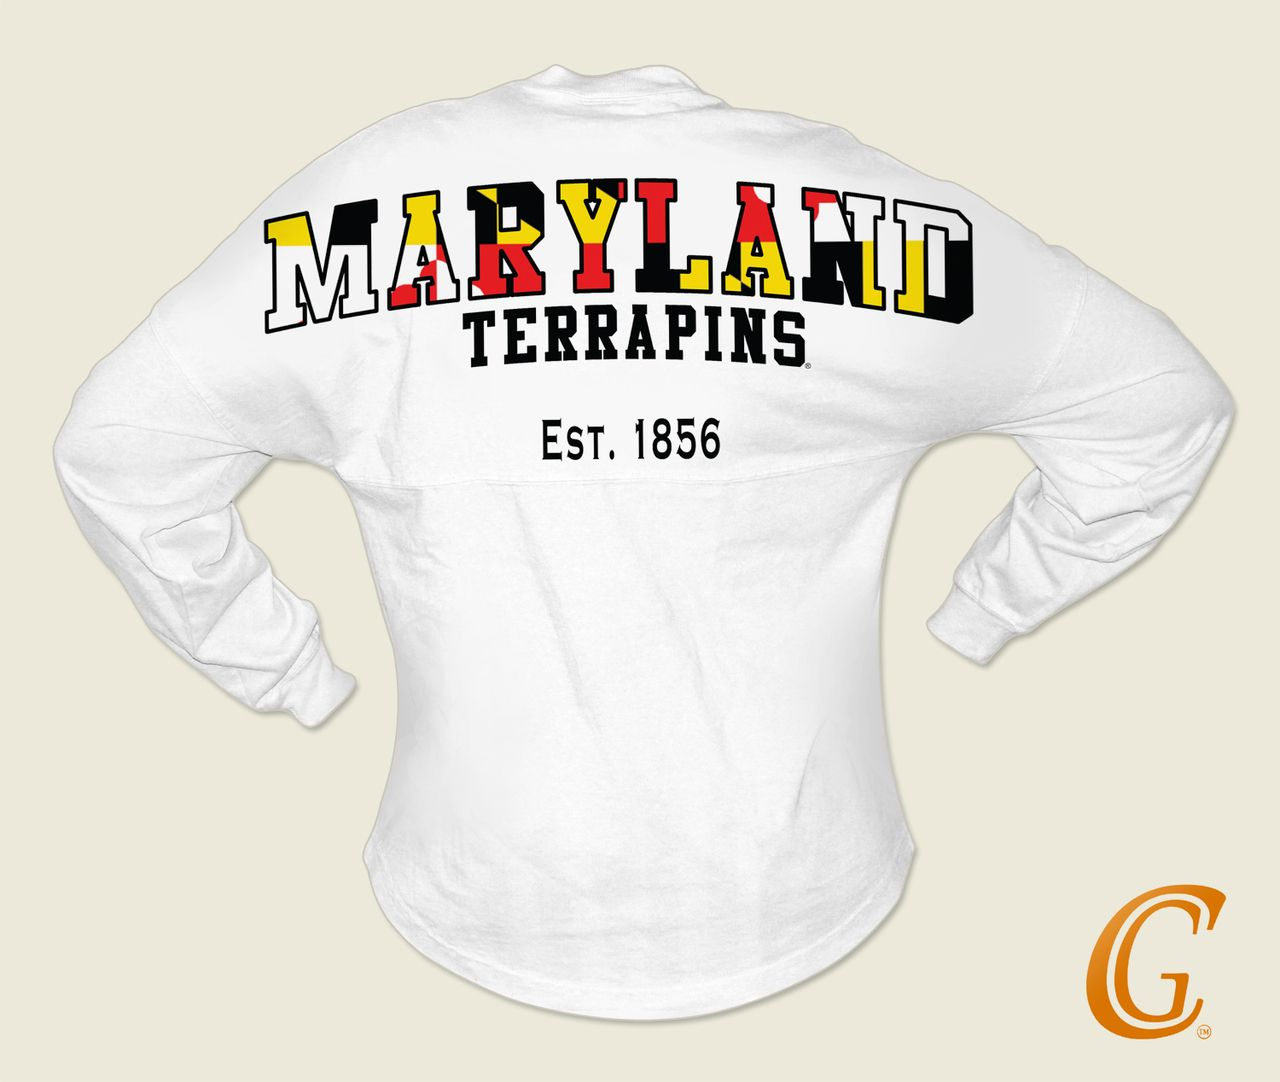 Big W School Shirts University Of Maryland Terrapins Spirit Football Jersey W Md